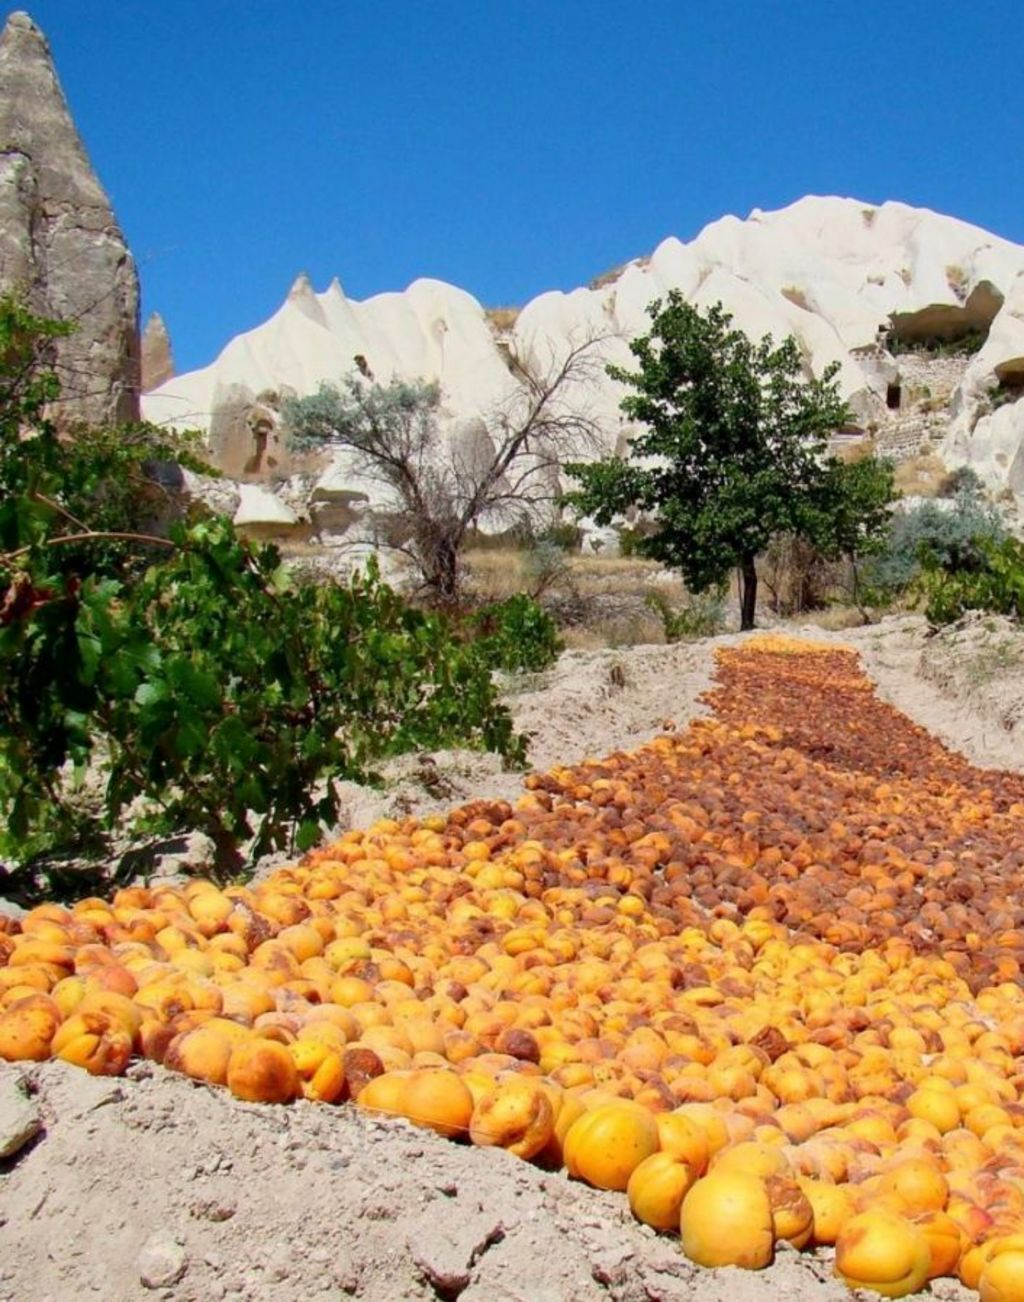 Drying apricots from the valley gardens.